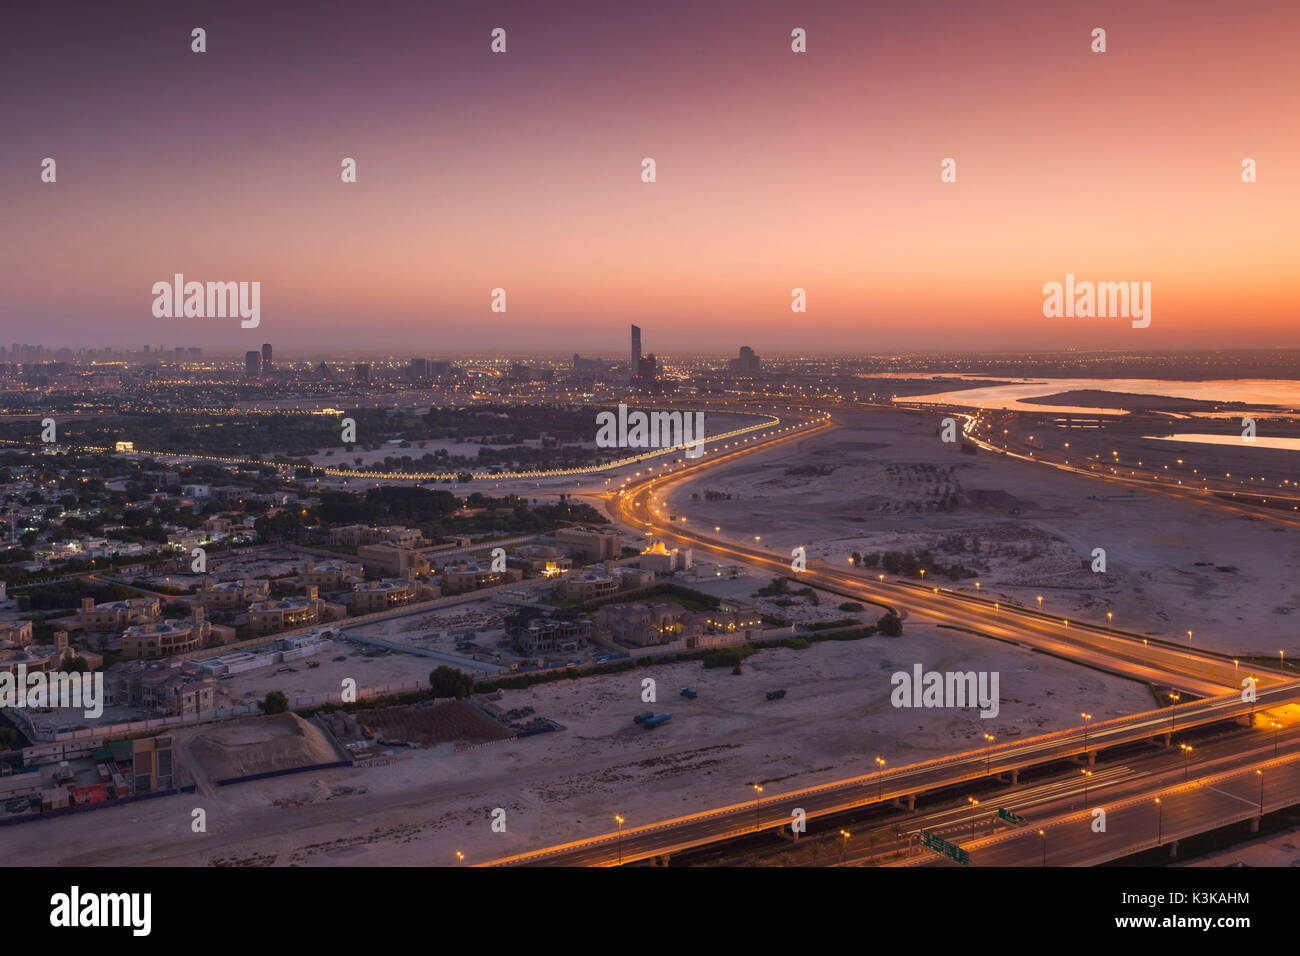 UAE, Dubai, Downtown Dubai, elevated desert and highway view towards Ras Al Khor, dawn - Stock Image